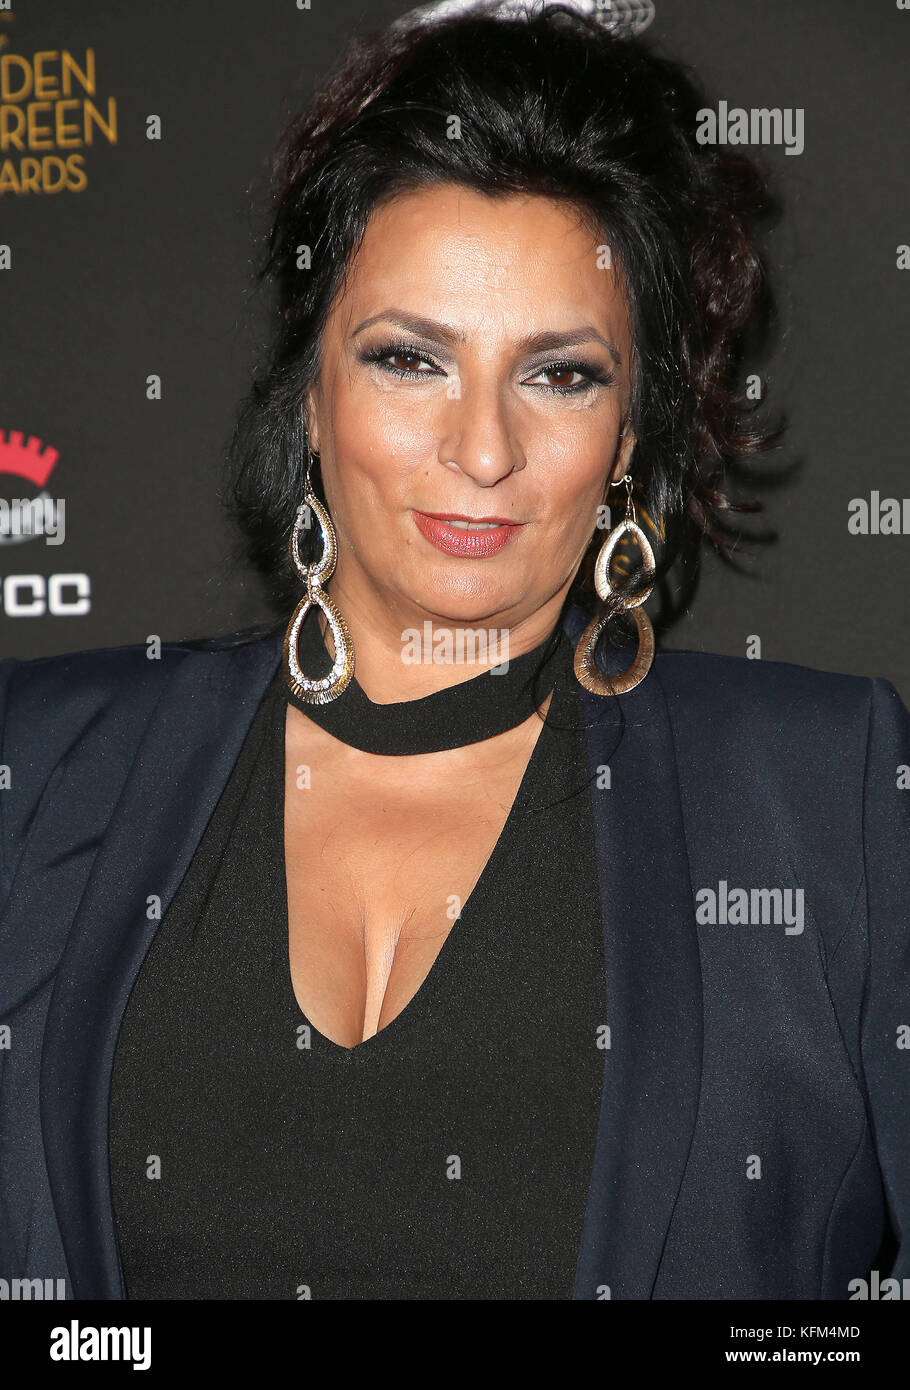 Los Angeles California Usa 29th Oct 2017 Alice Amter 2nd Annual Stock Photo Alamy Alice amter (born 11 may 1966 in birmingham) is an english actress, best known for her character mrs. alamy